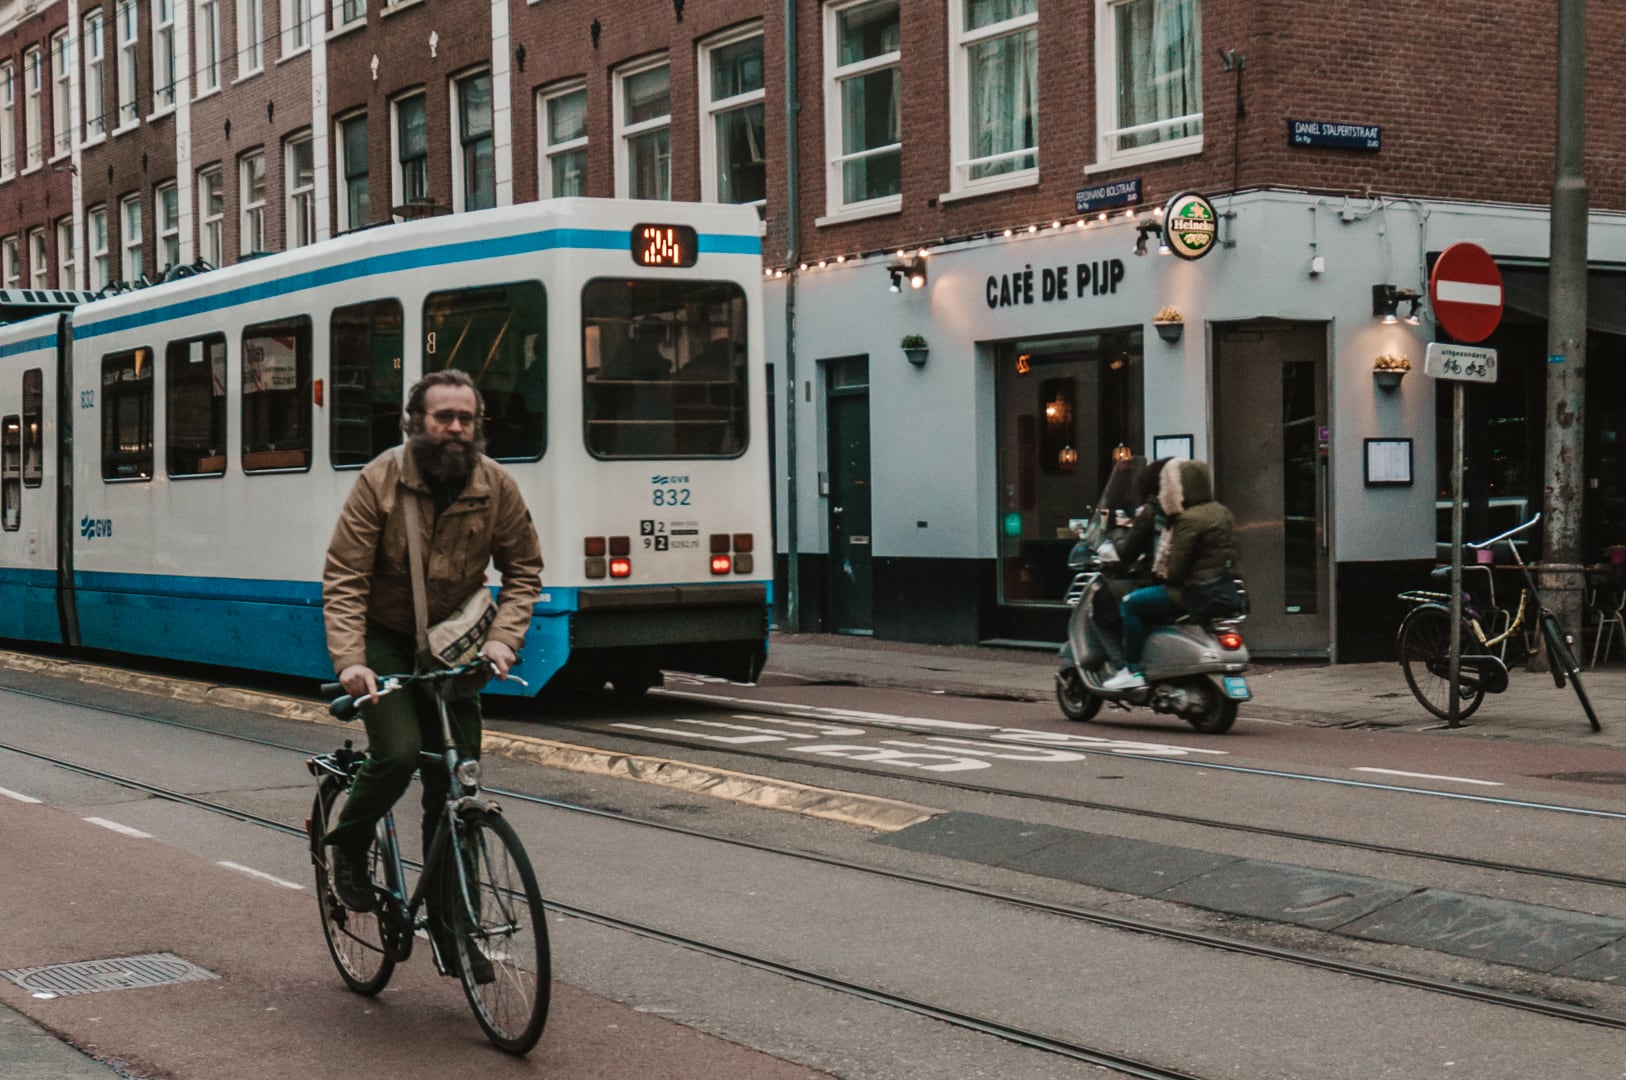 A man rides his bicycle on the bike path in Amsterdam, outside the cafe, Cafe De Pijp. A tram is passing behind him.